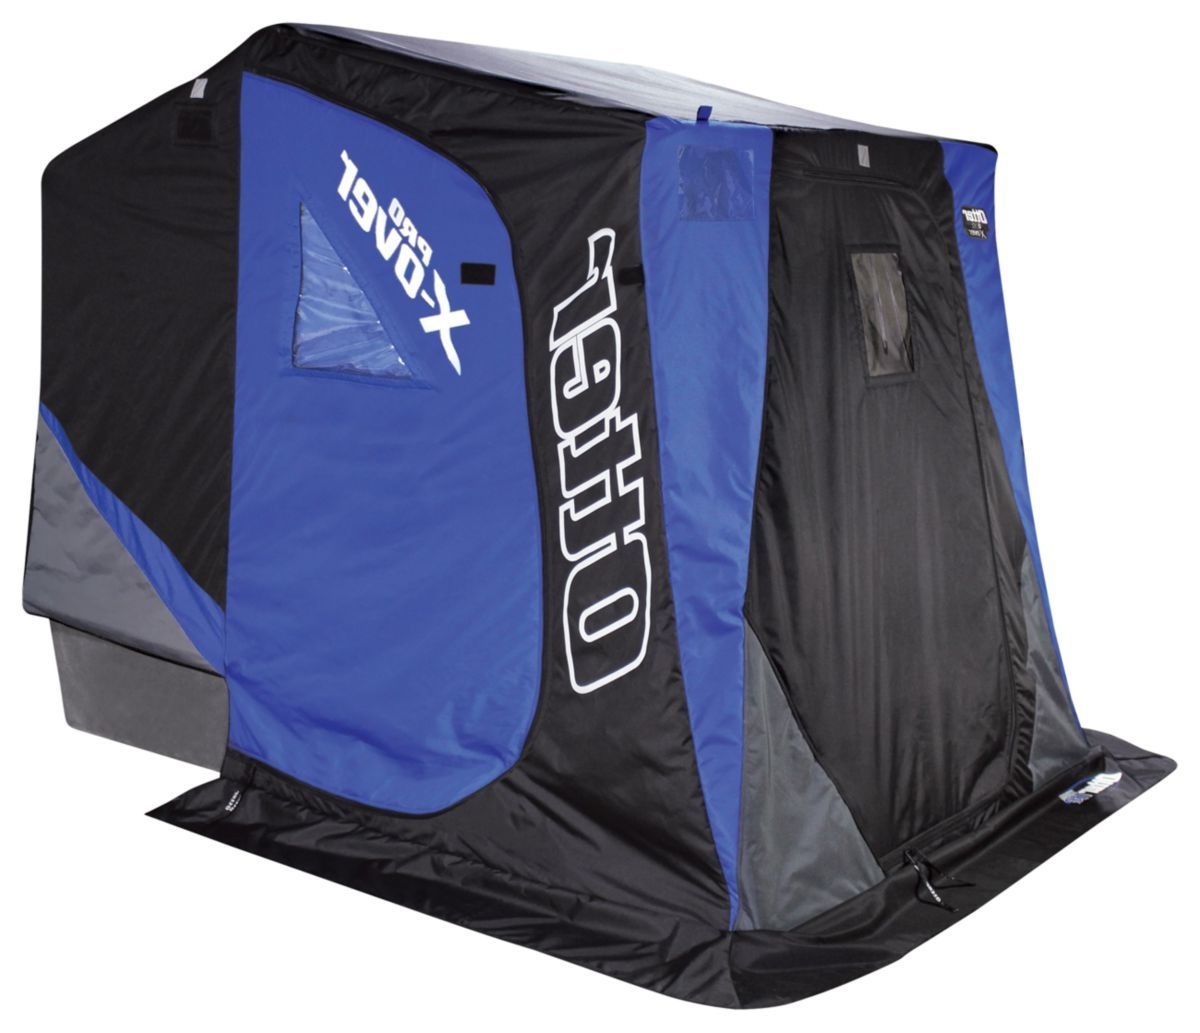 Discount Ice Fishing Gear - The Best 12 Shelters & Sleds